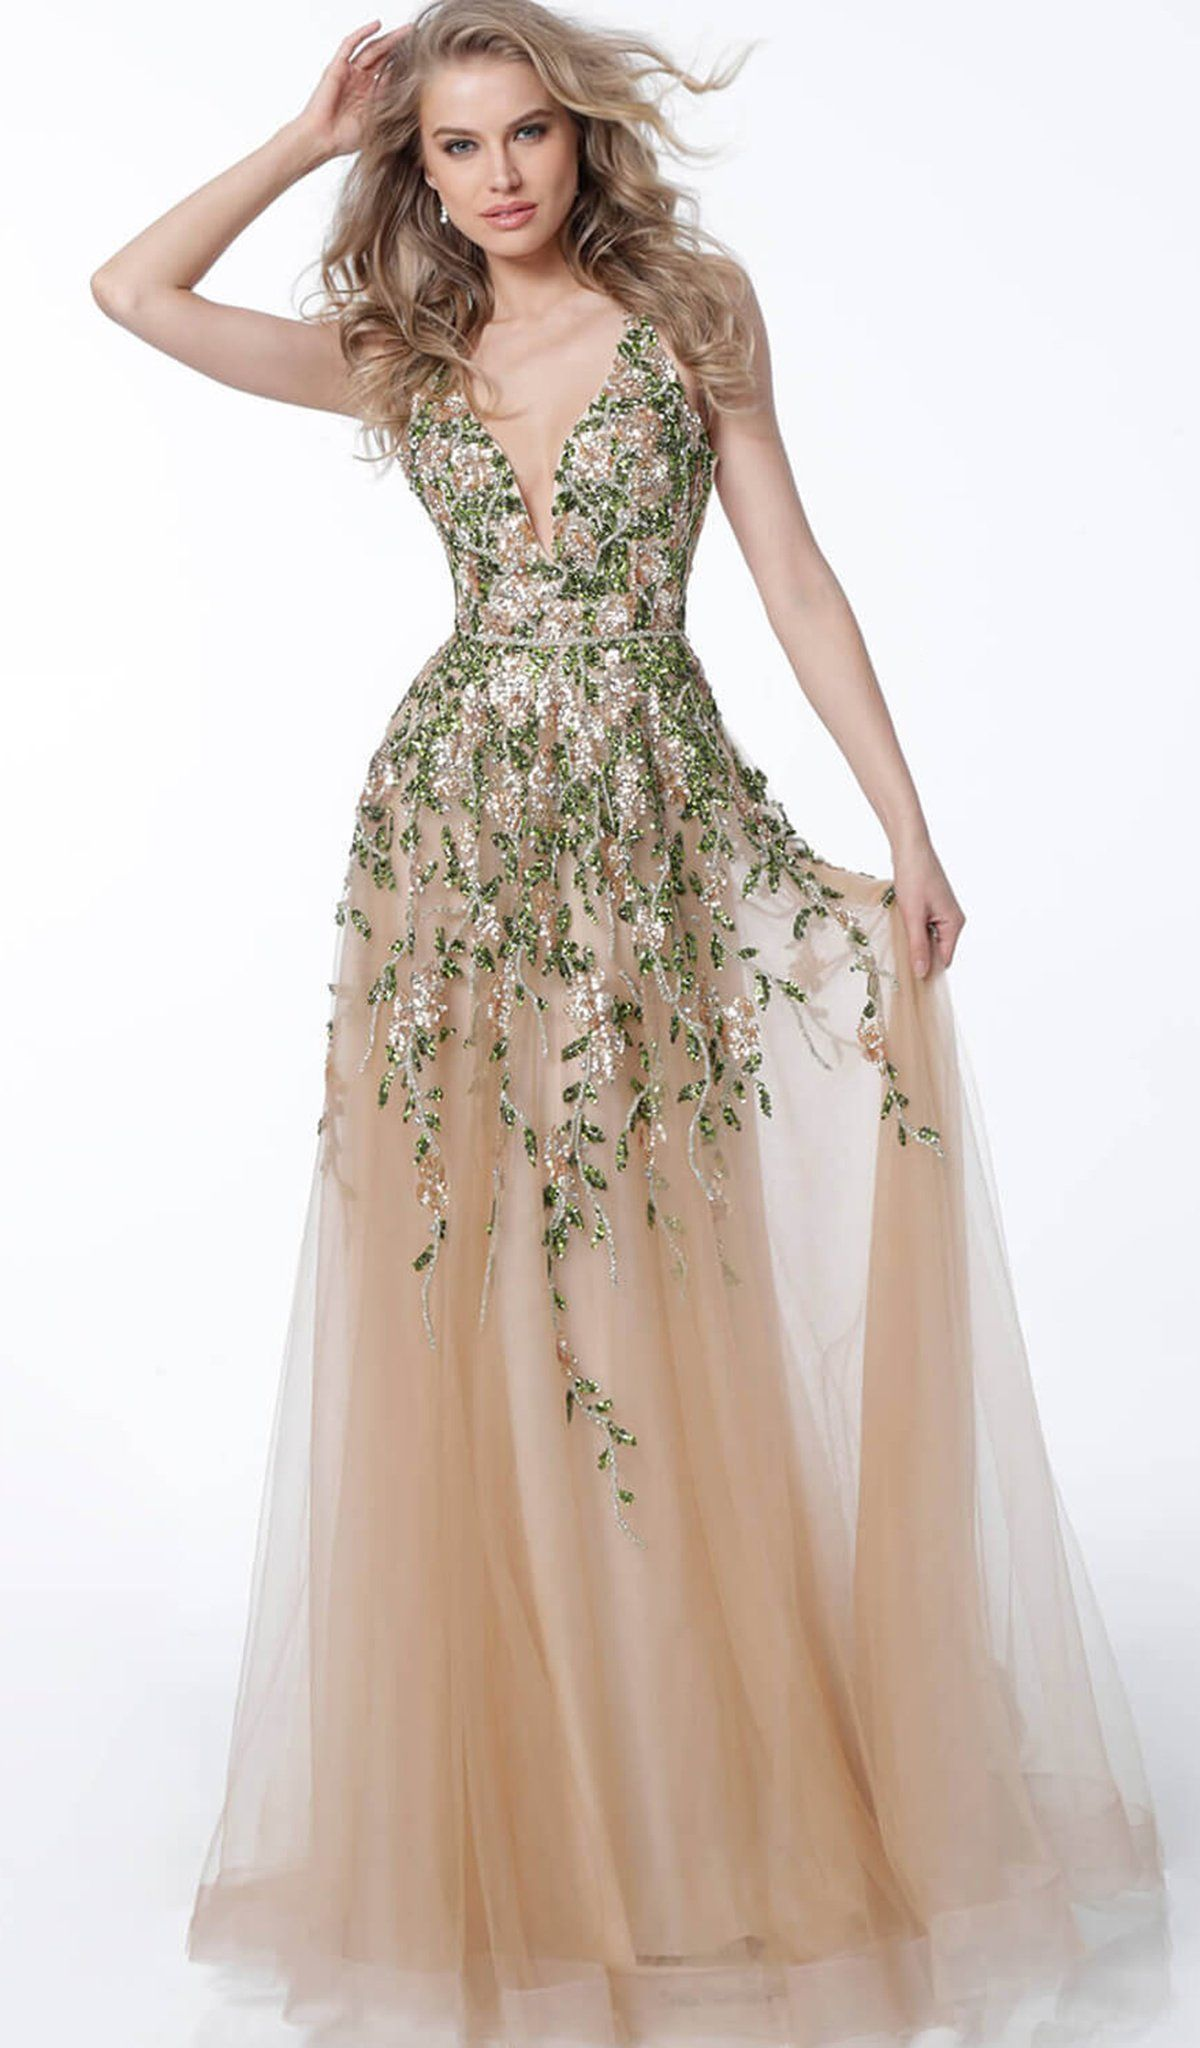 jovani - 60800 floral embroidered crisscross-strapped gown